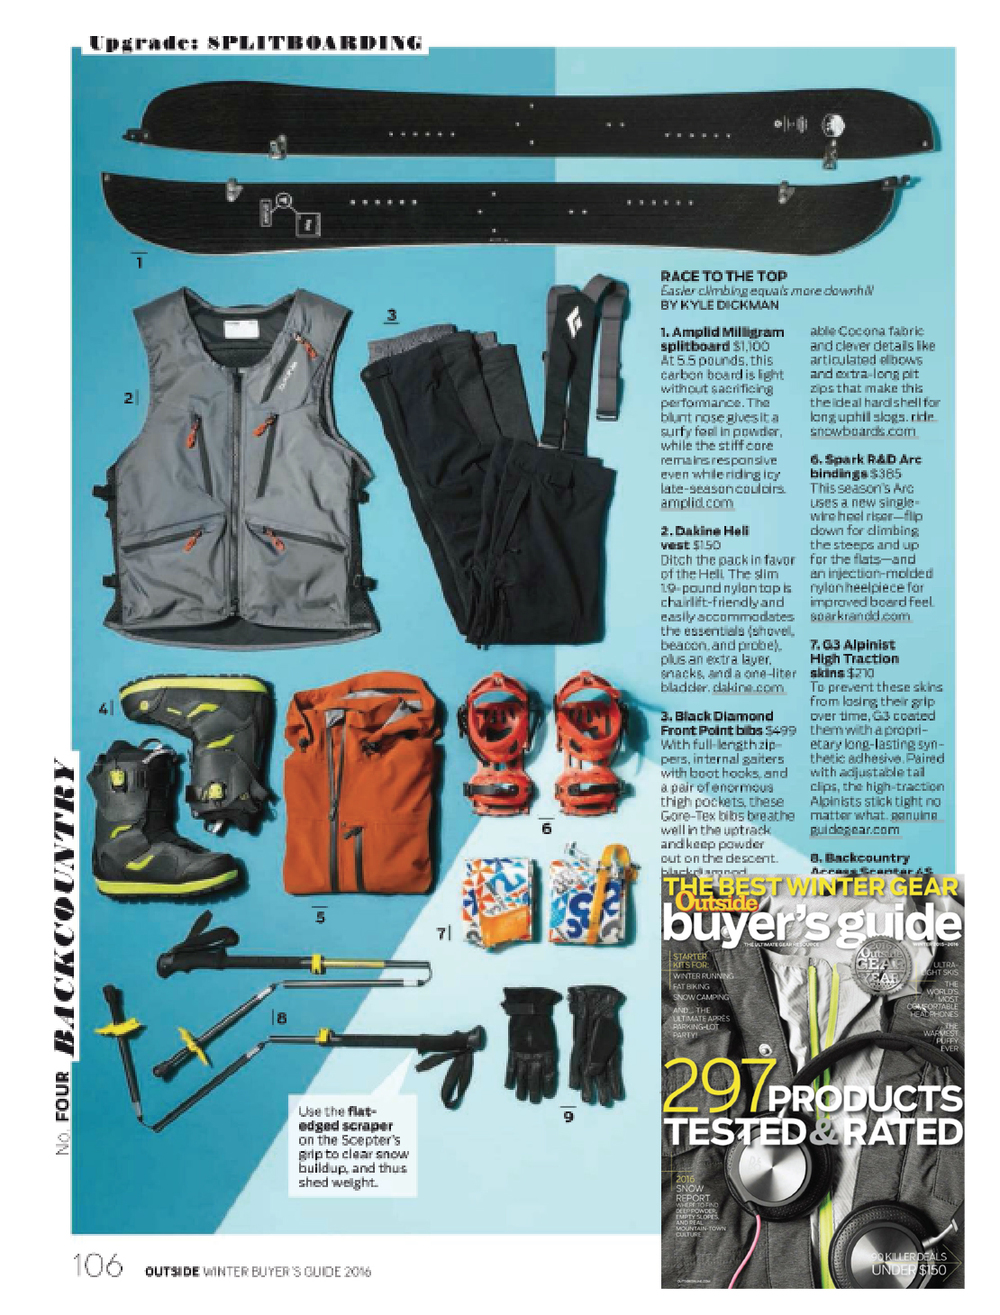 Outside Winter Buyer's Guide 2014